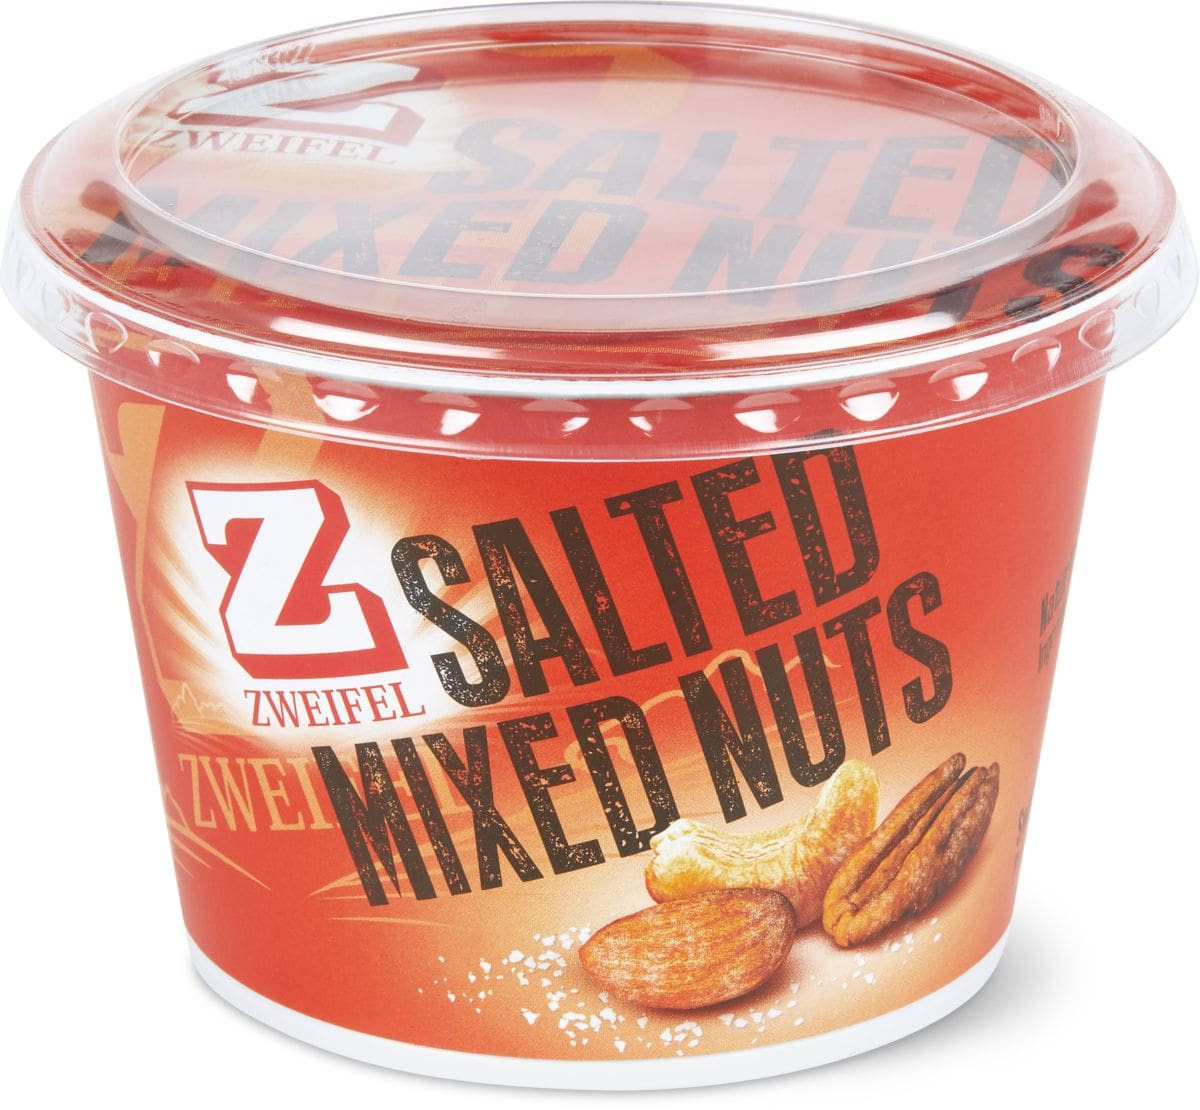 Zweifel Salted mixed nuts